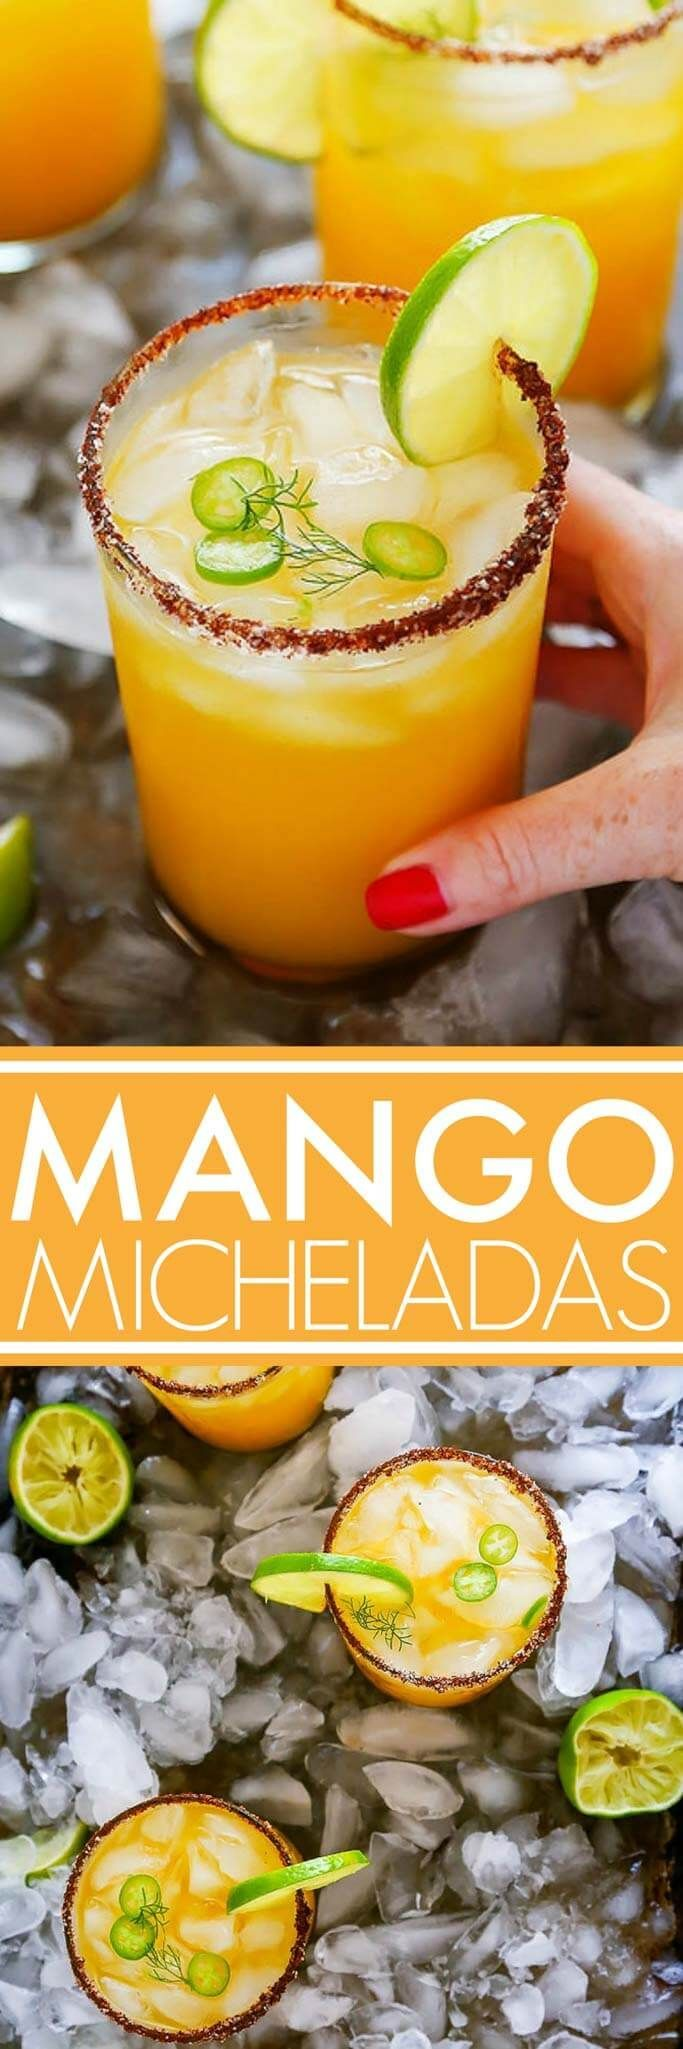 This Mango Michelada is a Mexican beer cocktail that's sweet and spicy and perfect for summer sipping!   platingsandpairings.com